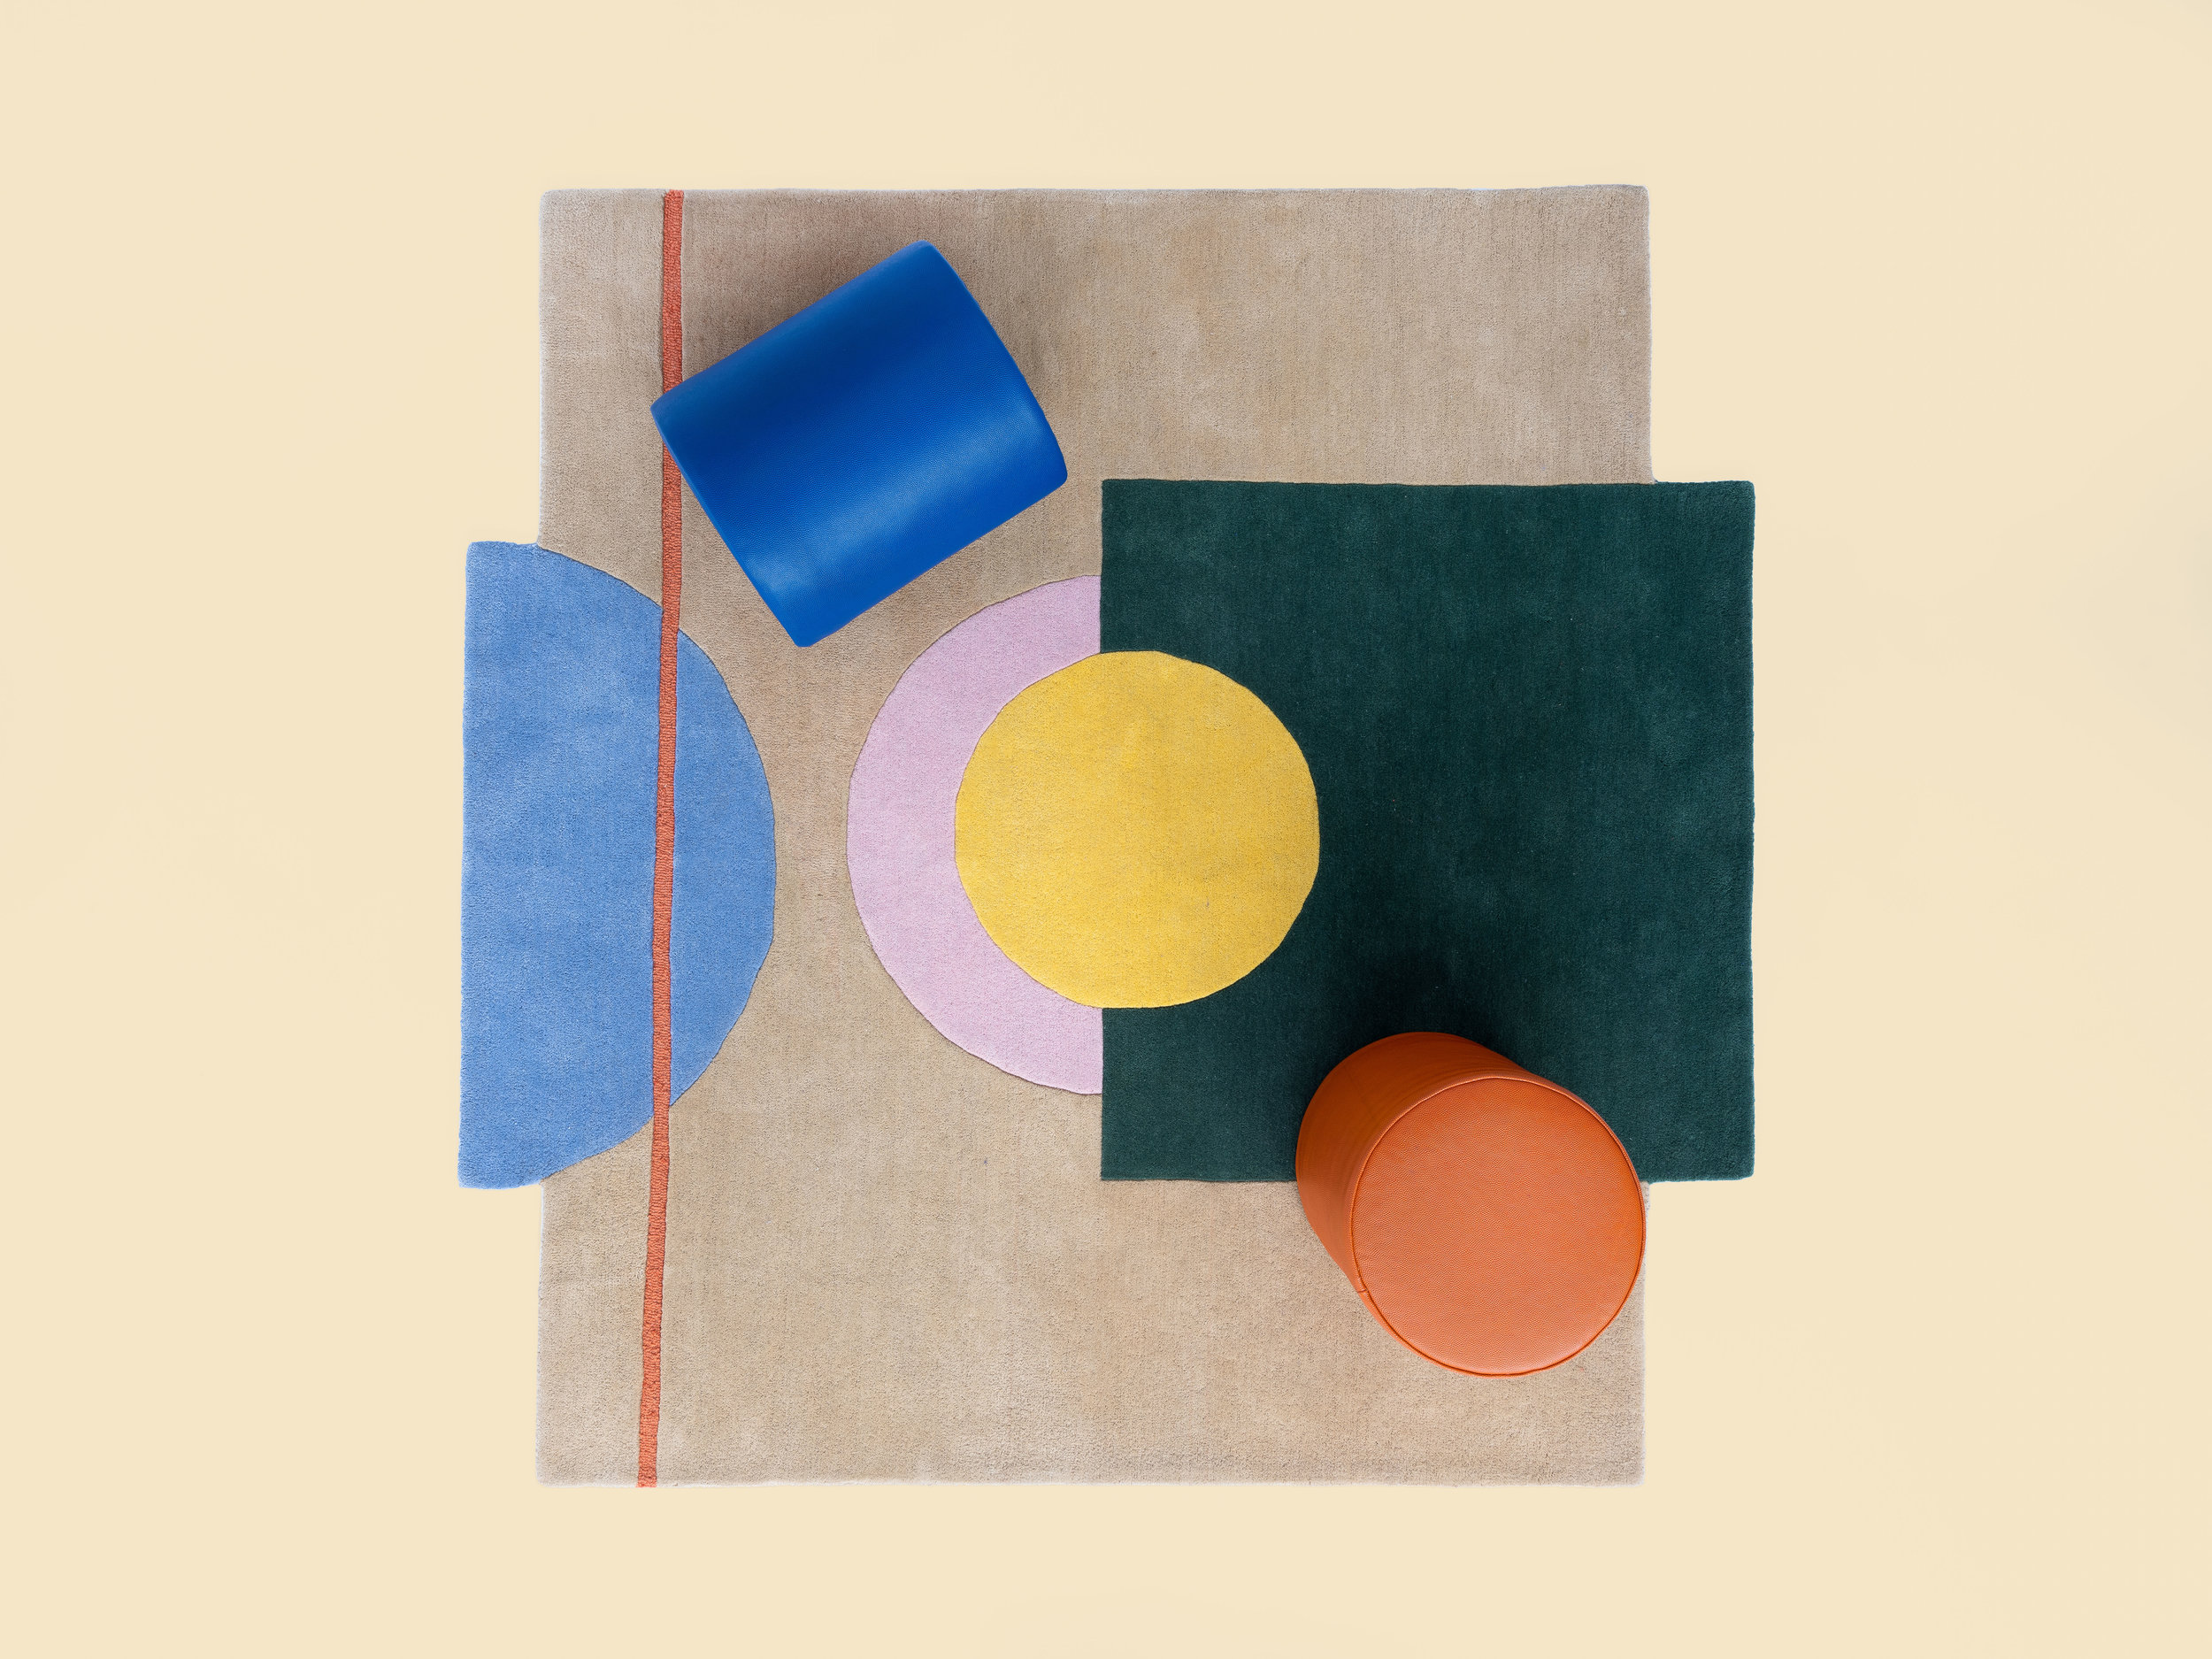 PIECES - Sports Court Collection by Aesthetic Pursuit